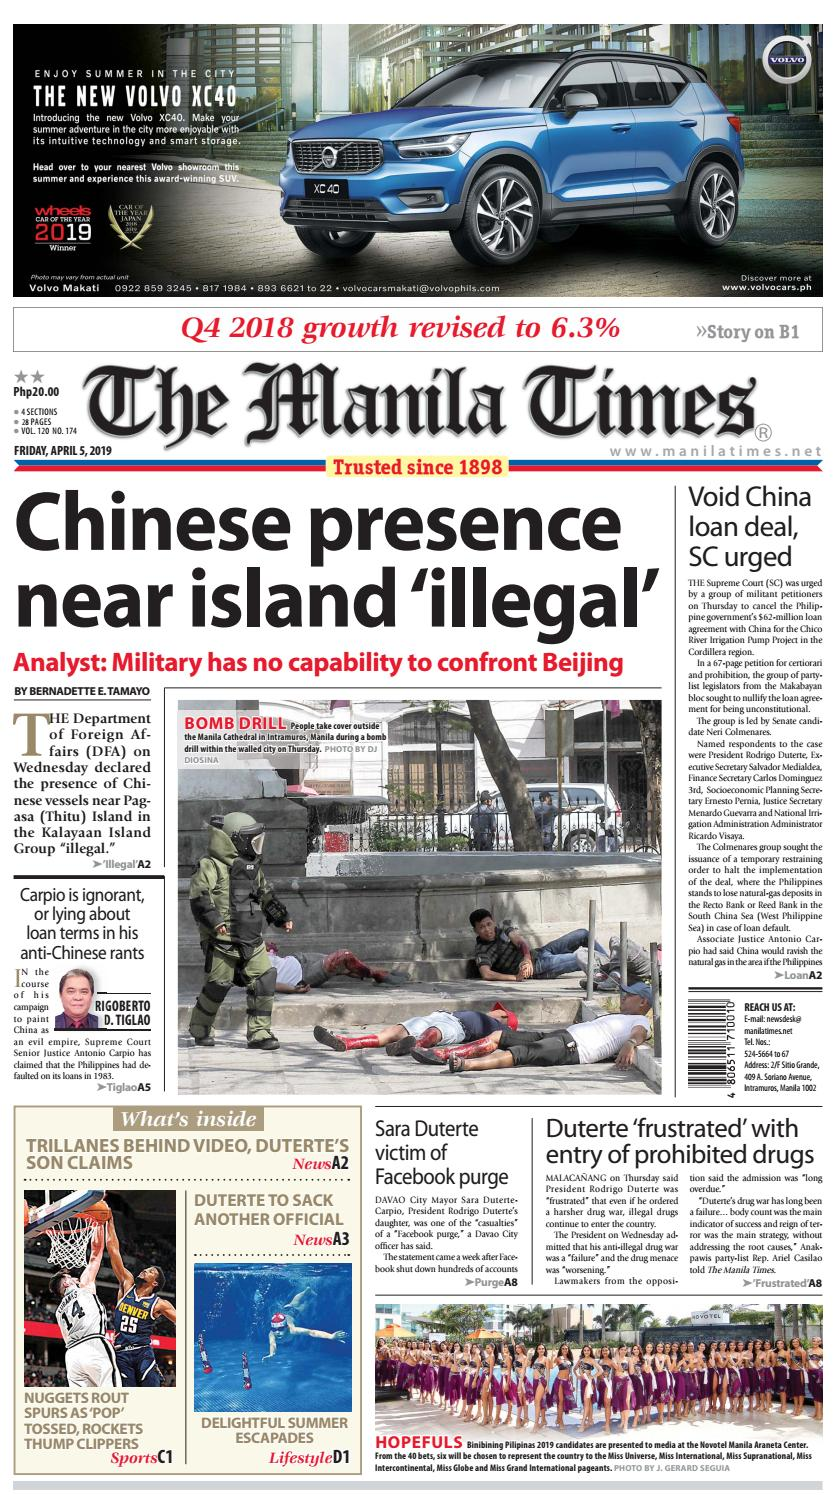 THE MANILA TIMES | APRIL 05, 2019 by The Manila Times - issuu